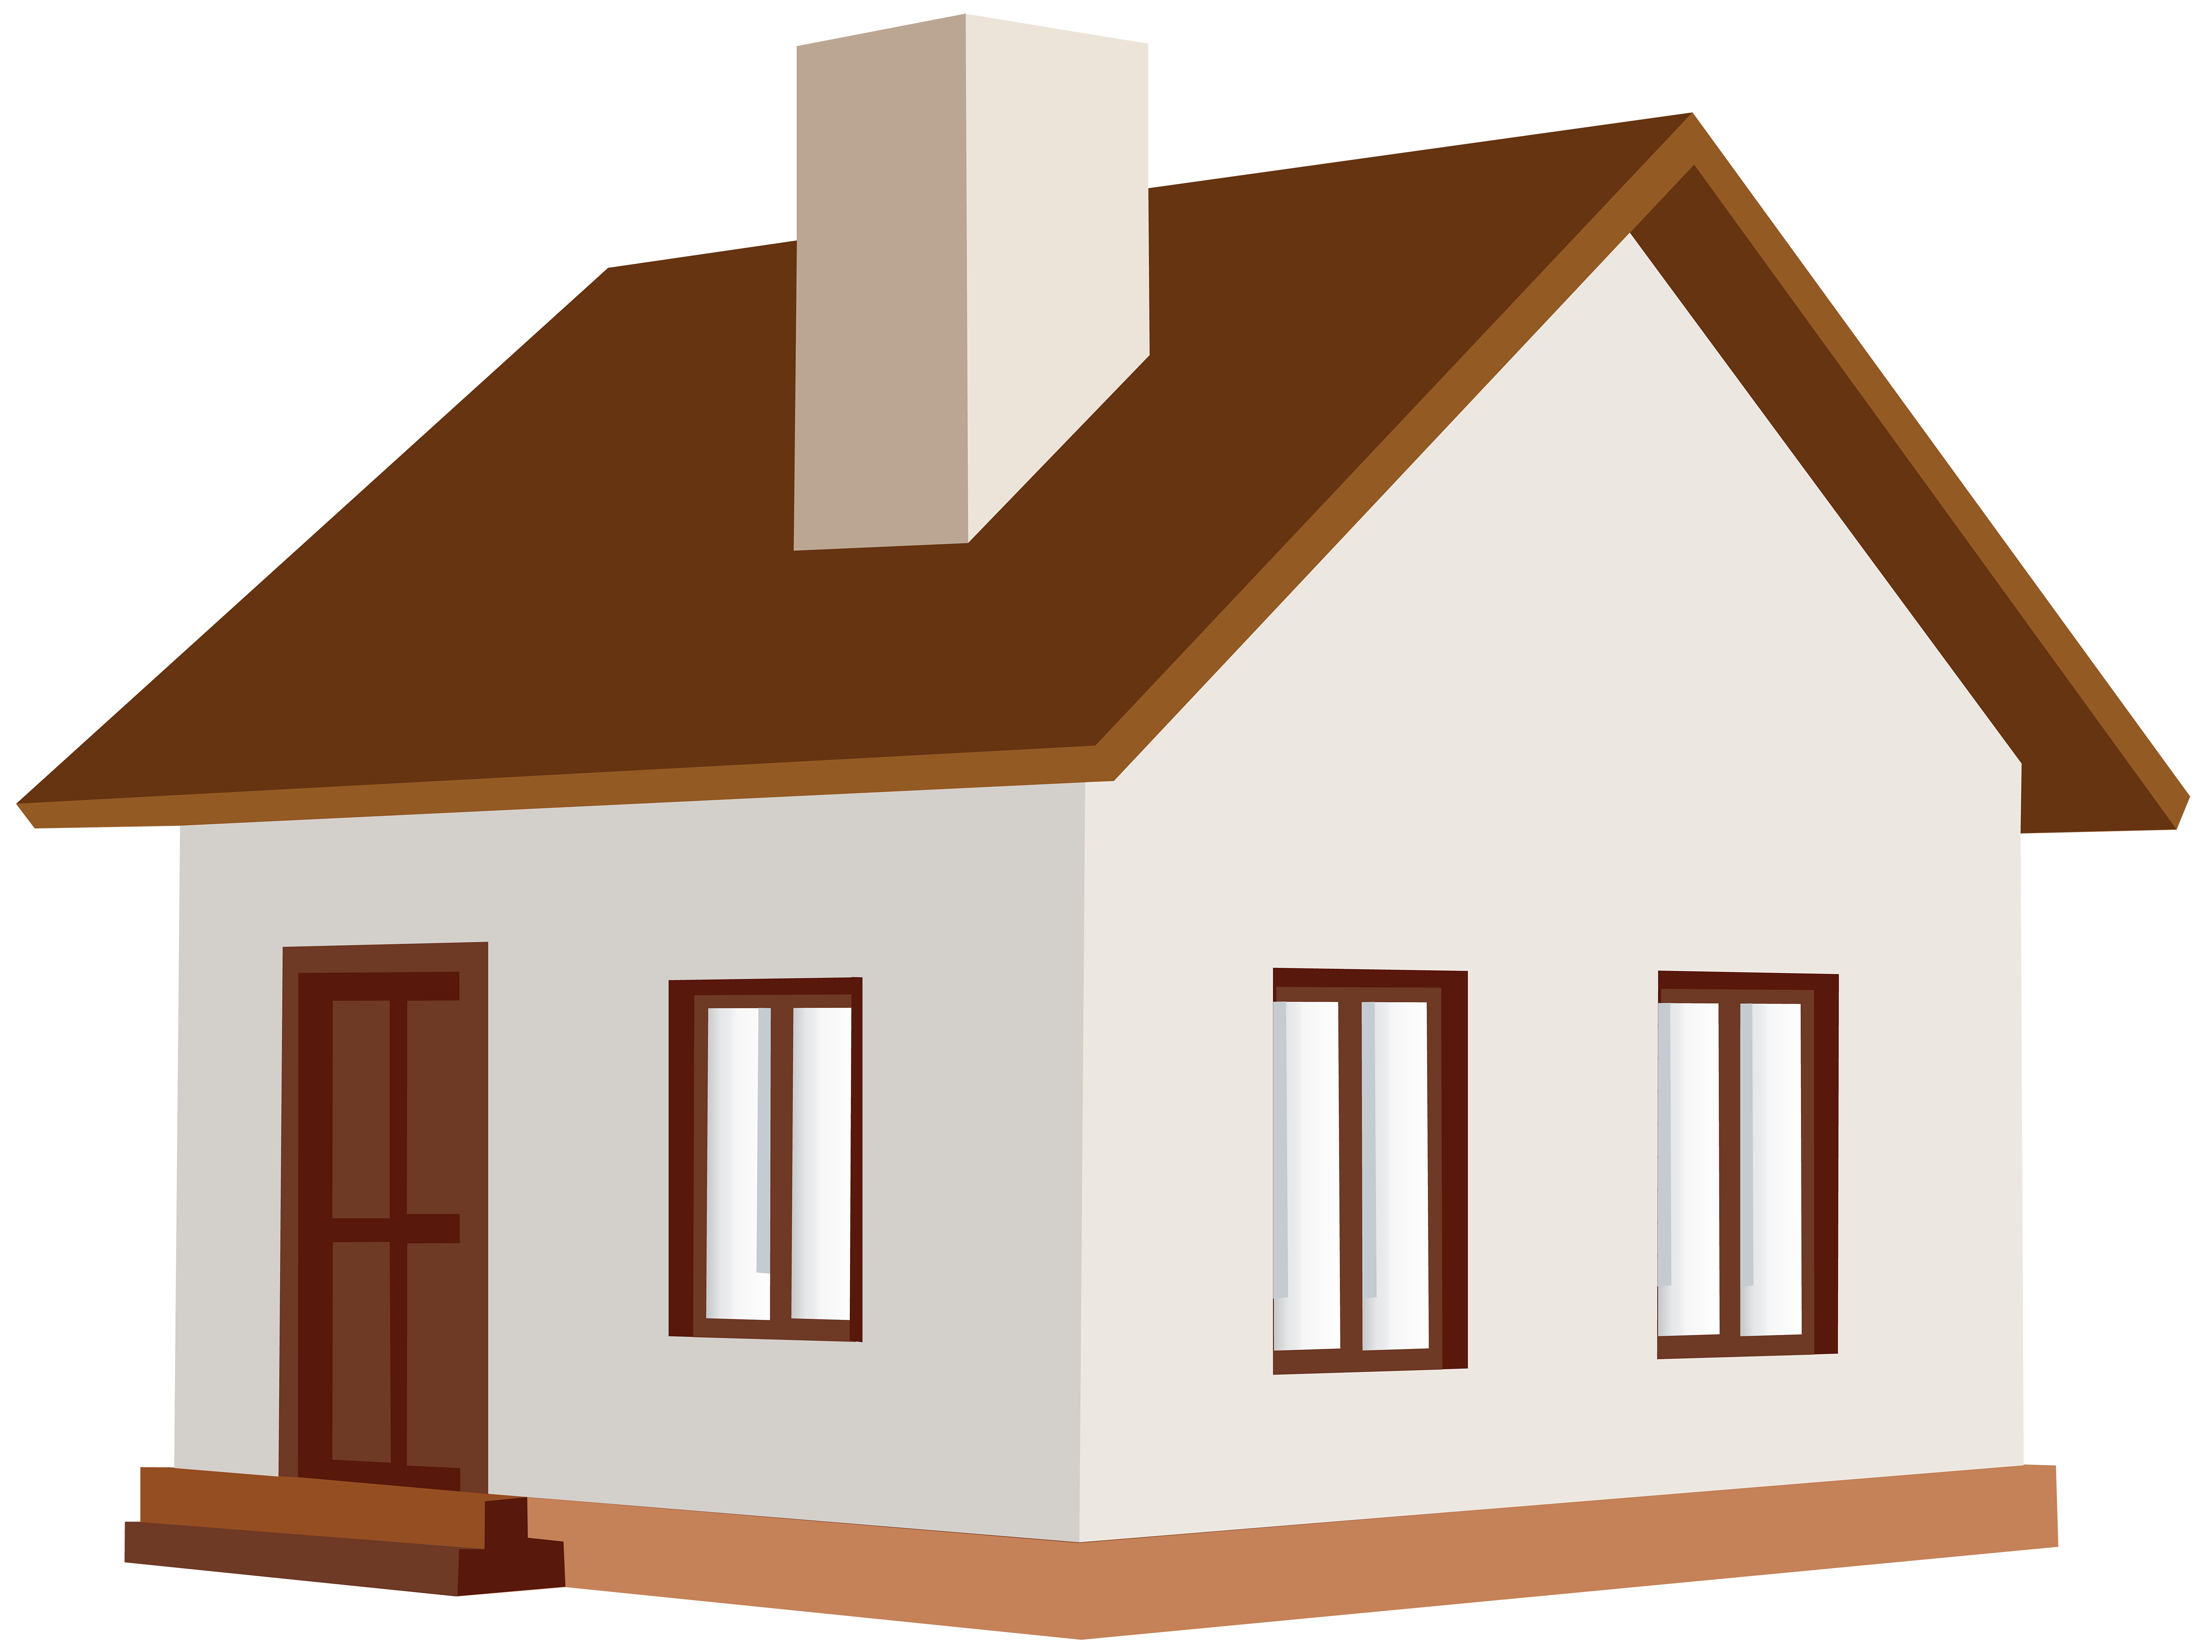 Home clipart. House png clip art